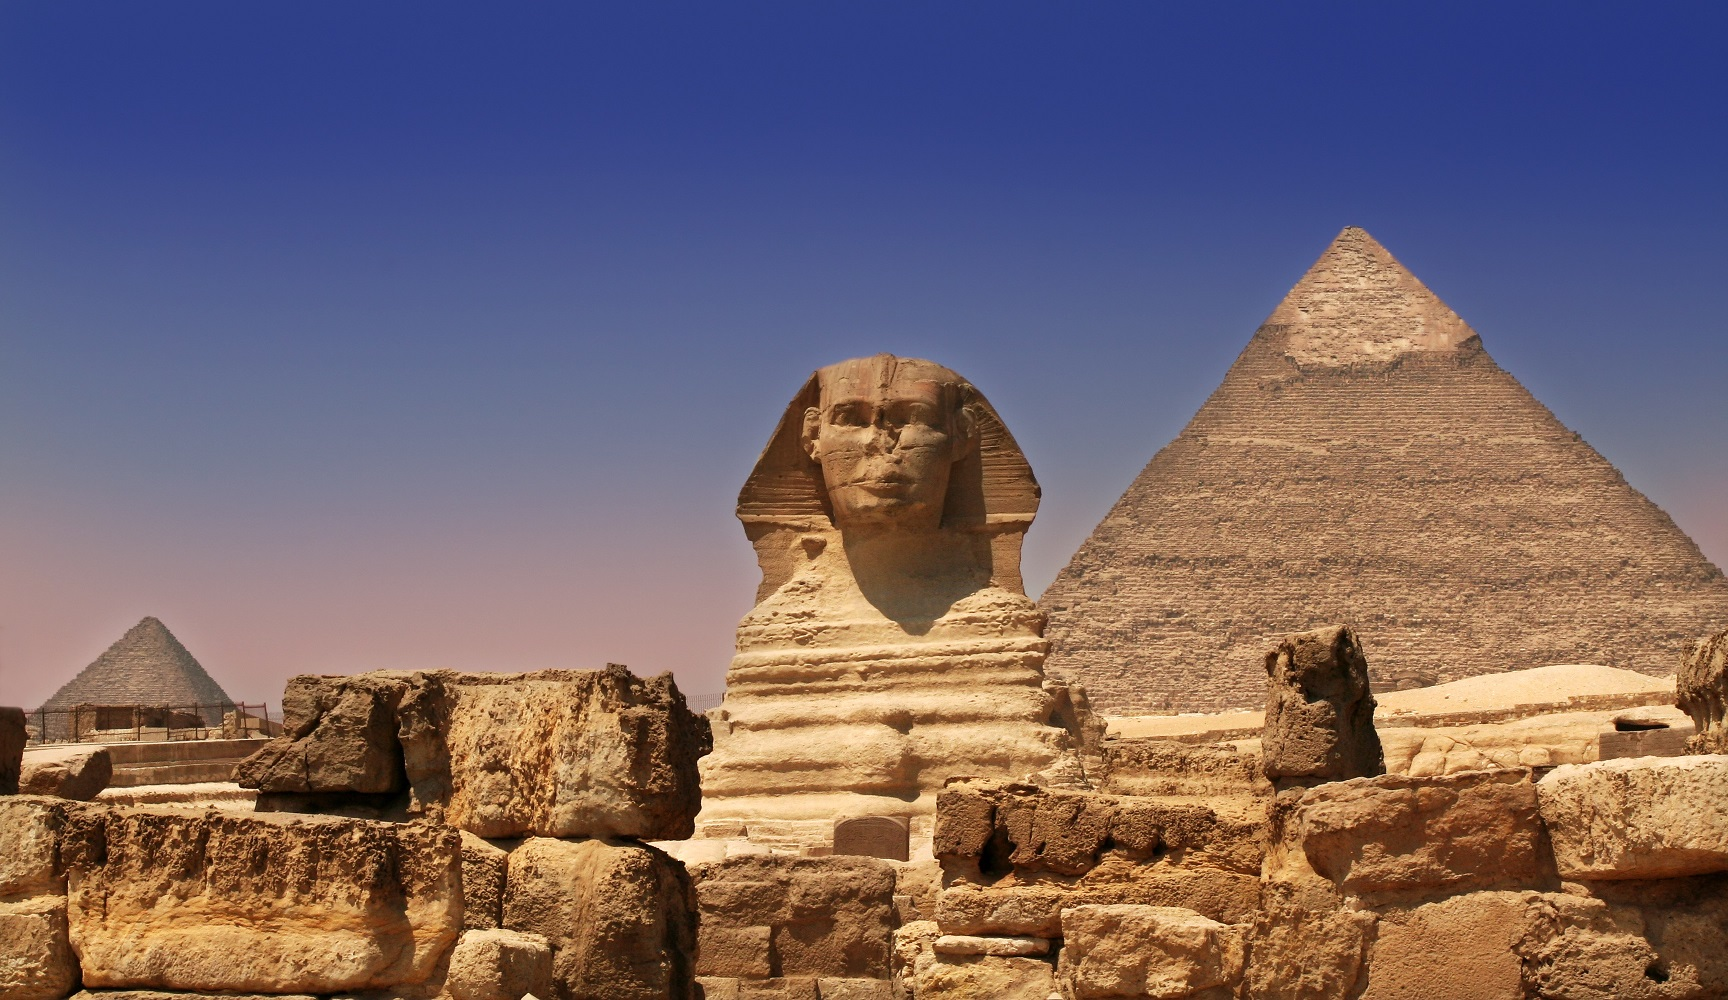 Pyramids and Sphinx in Egypt - Sam valadi